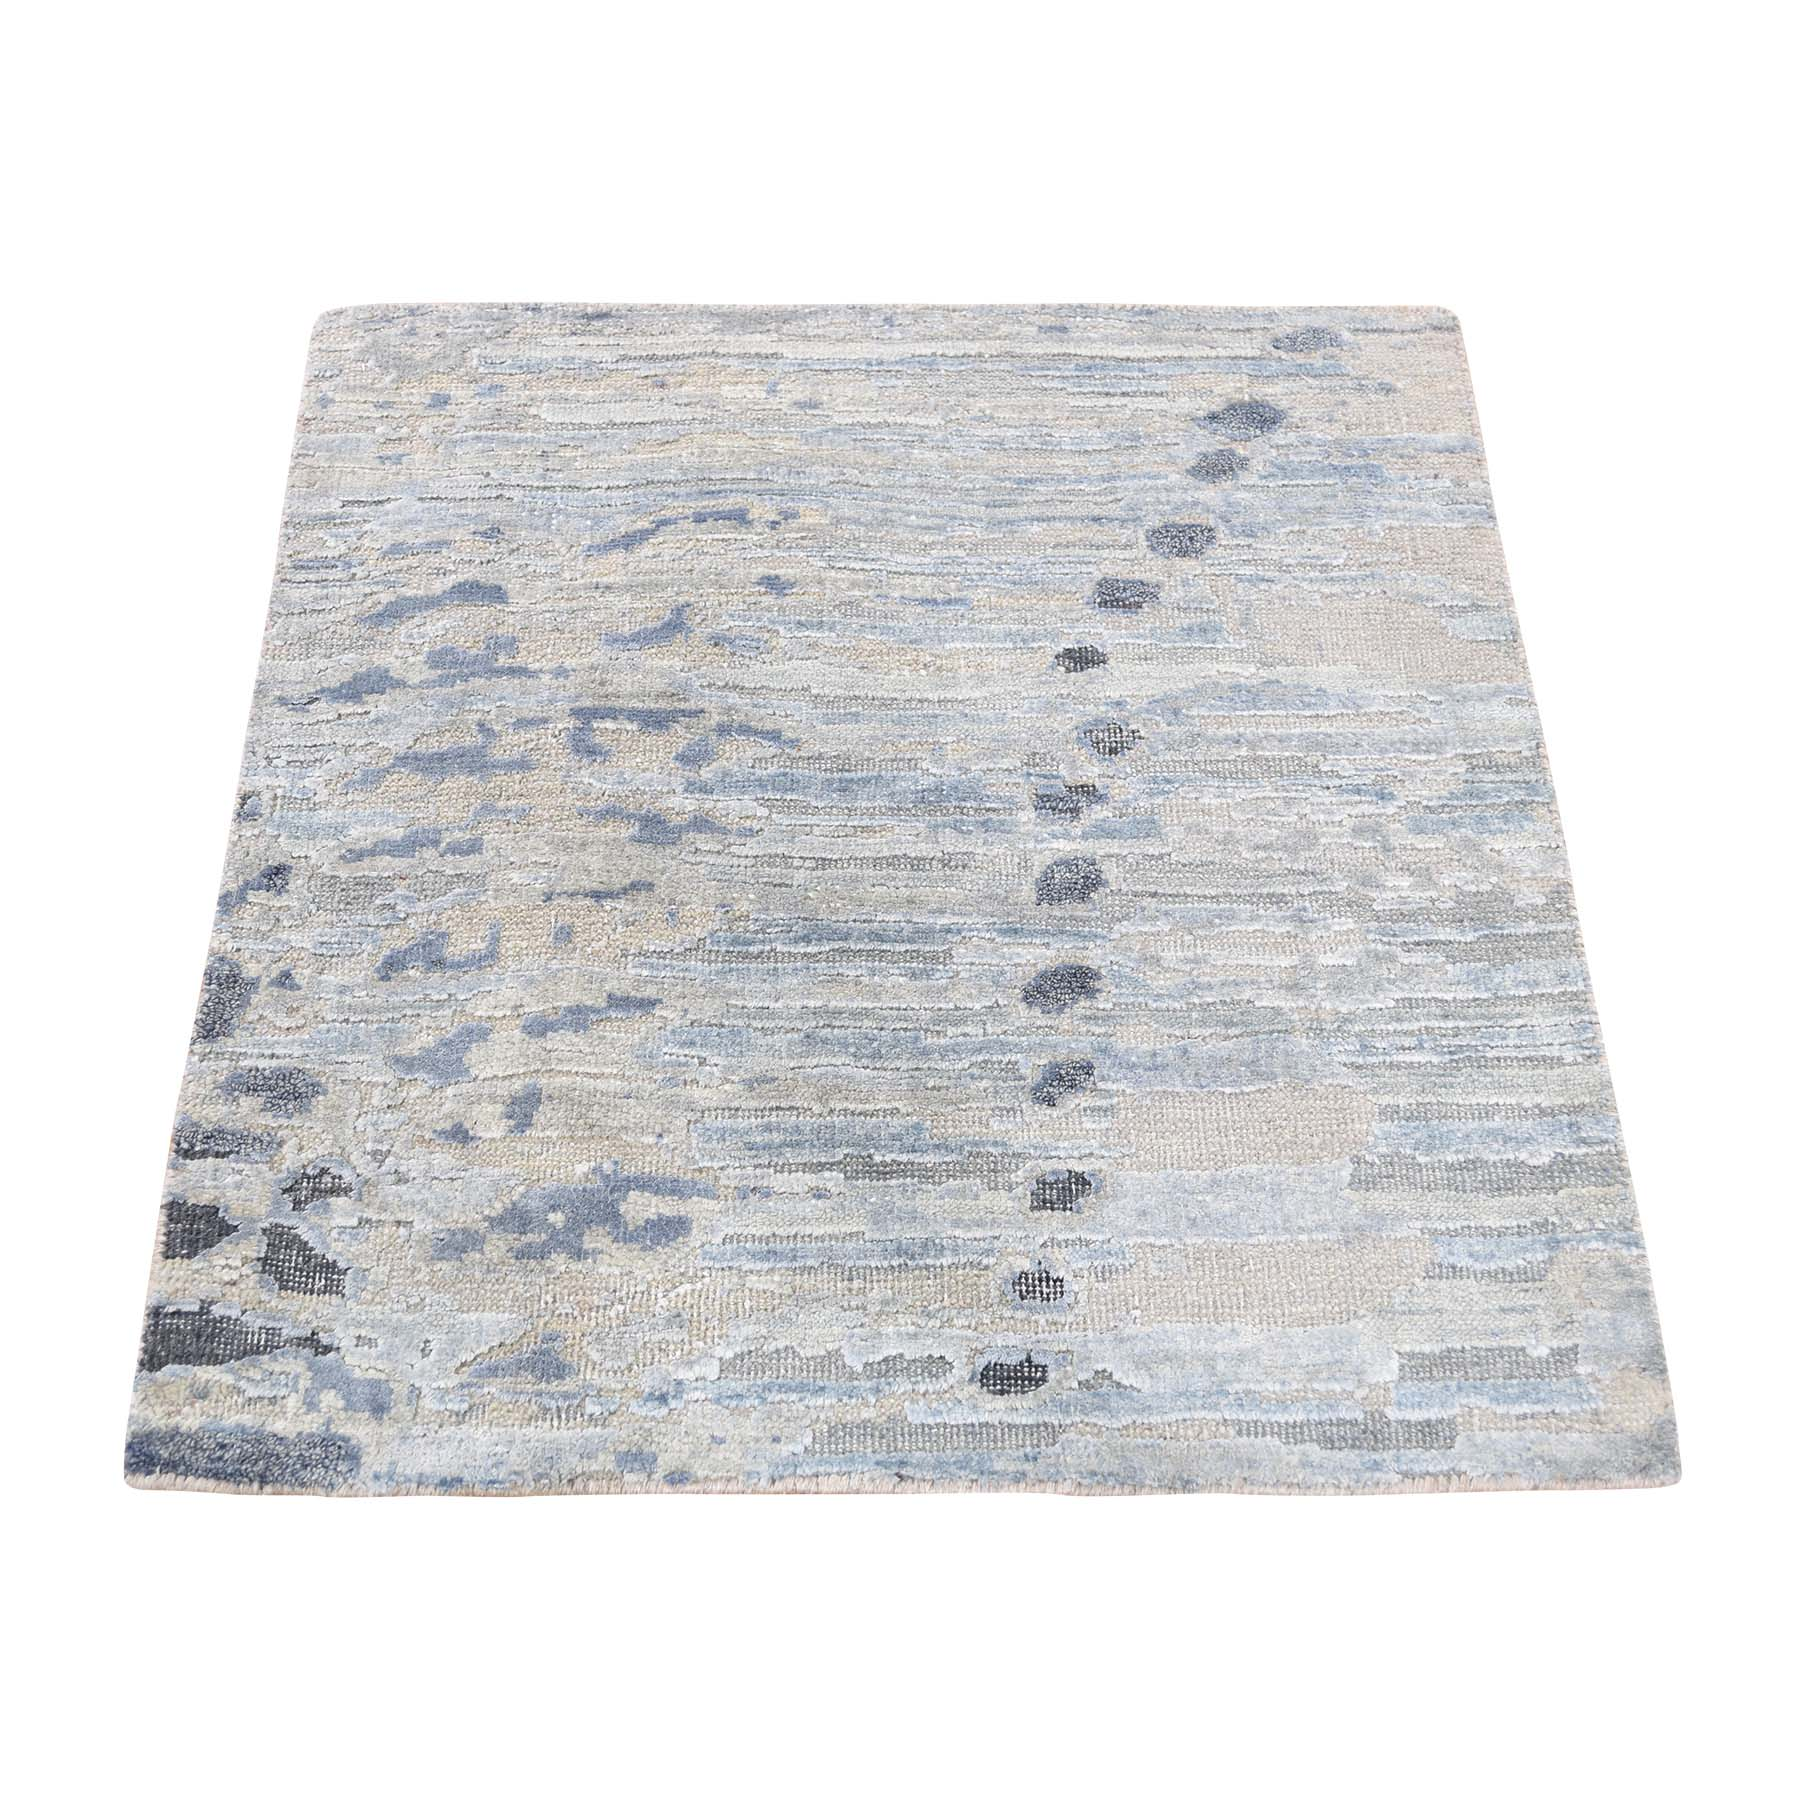 "2'X2'3"" Sampler Textured Pure Silk With Textured Wool Hand-Knotted Oriental Rug moad67bd"